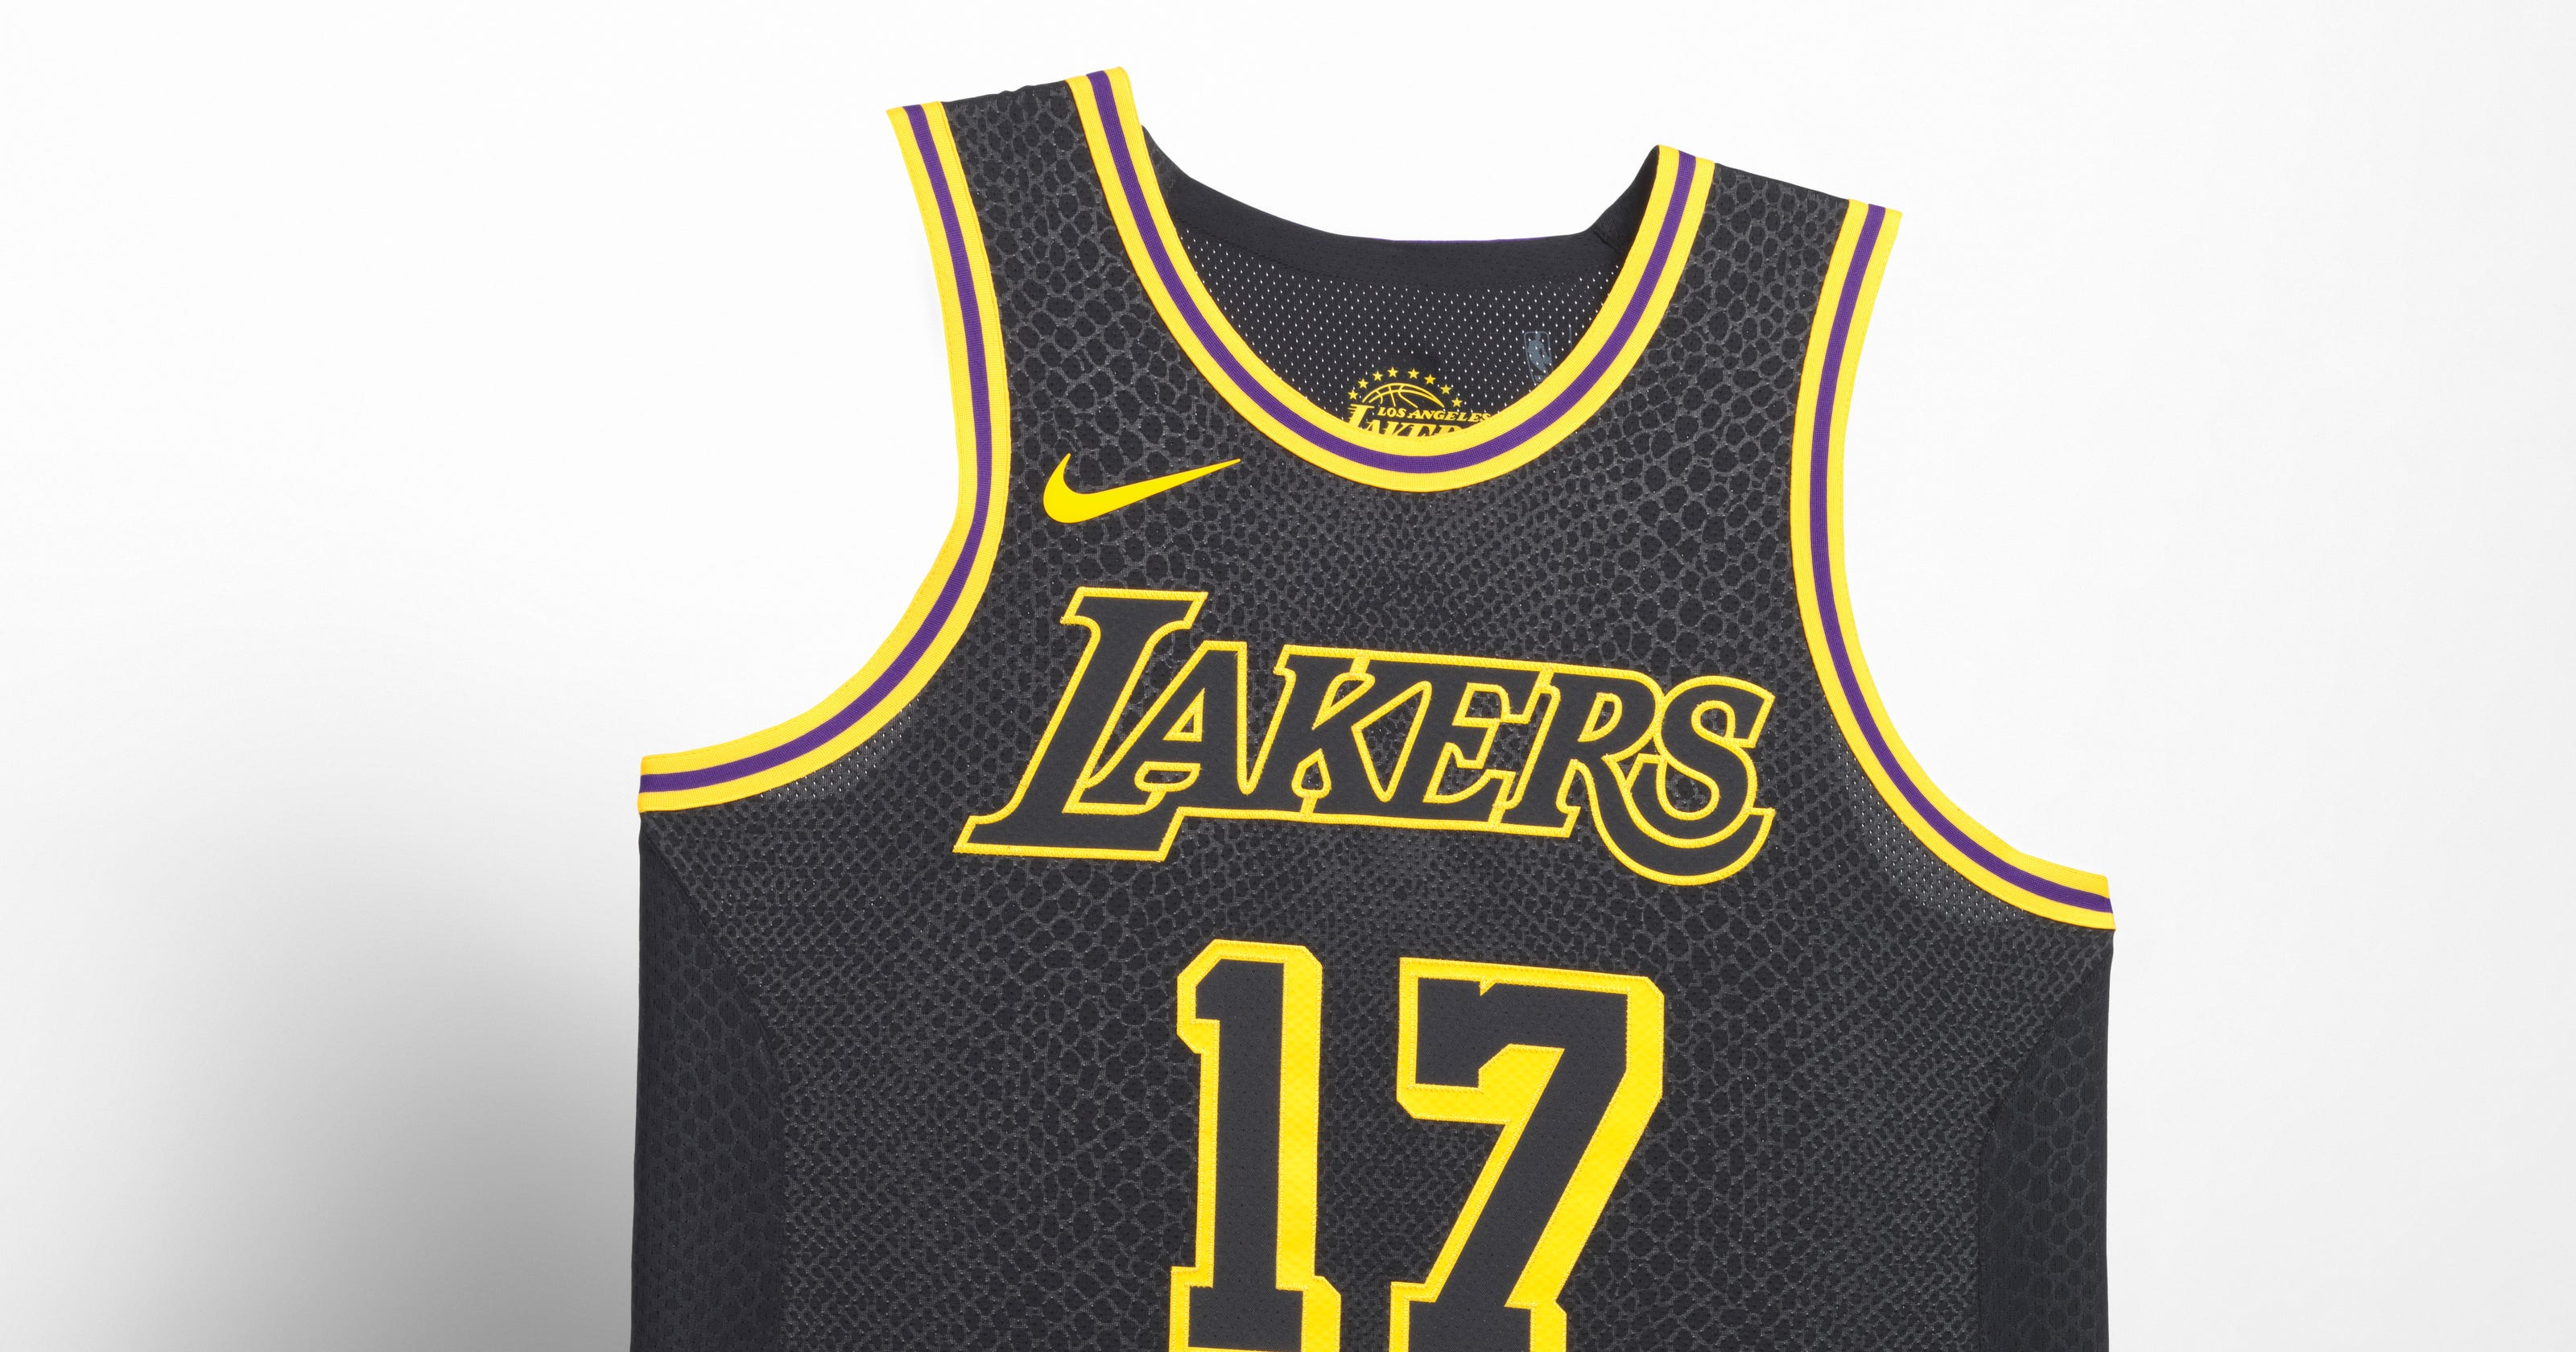 5ef9bc8291b Nike NBA City Edition uniforms  The story behind the design process